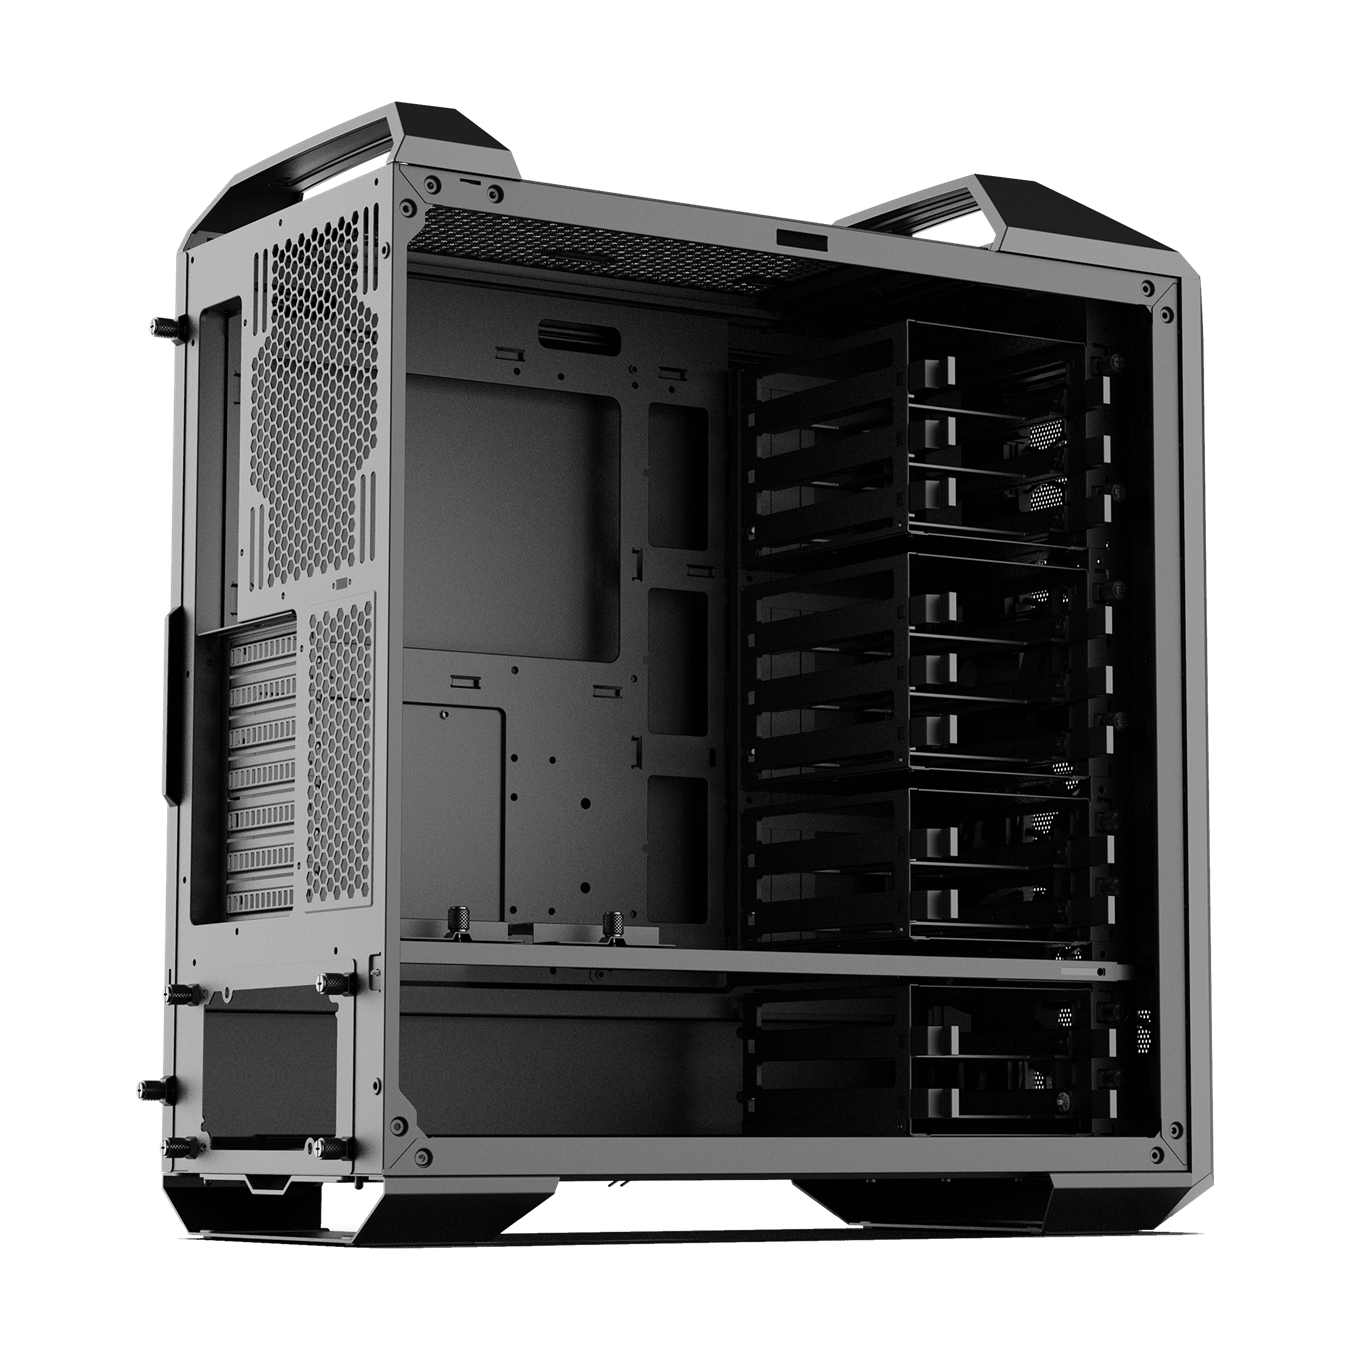 Removable partition panel isolates power supply and cables for clean management.